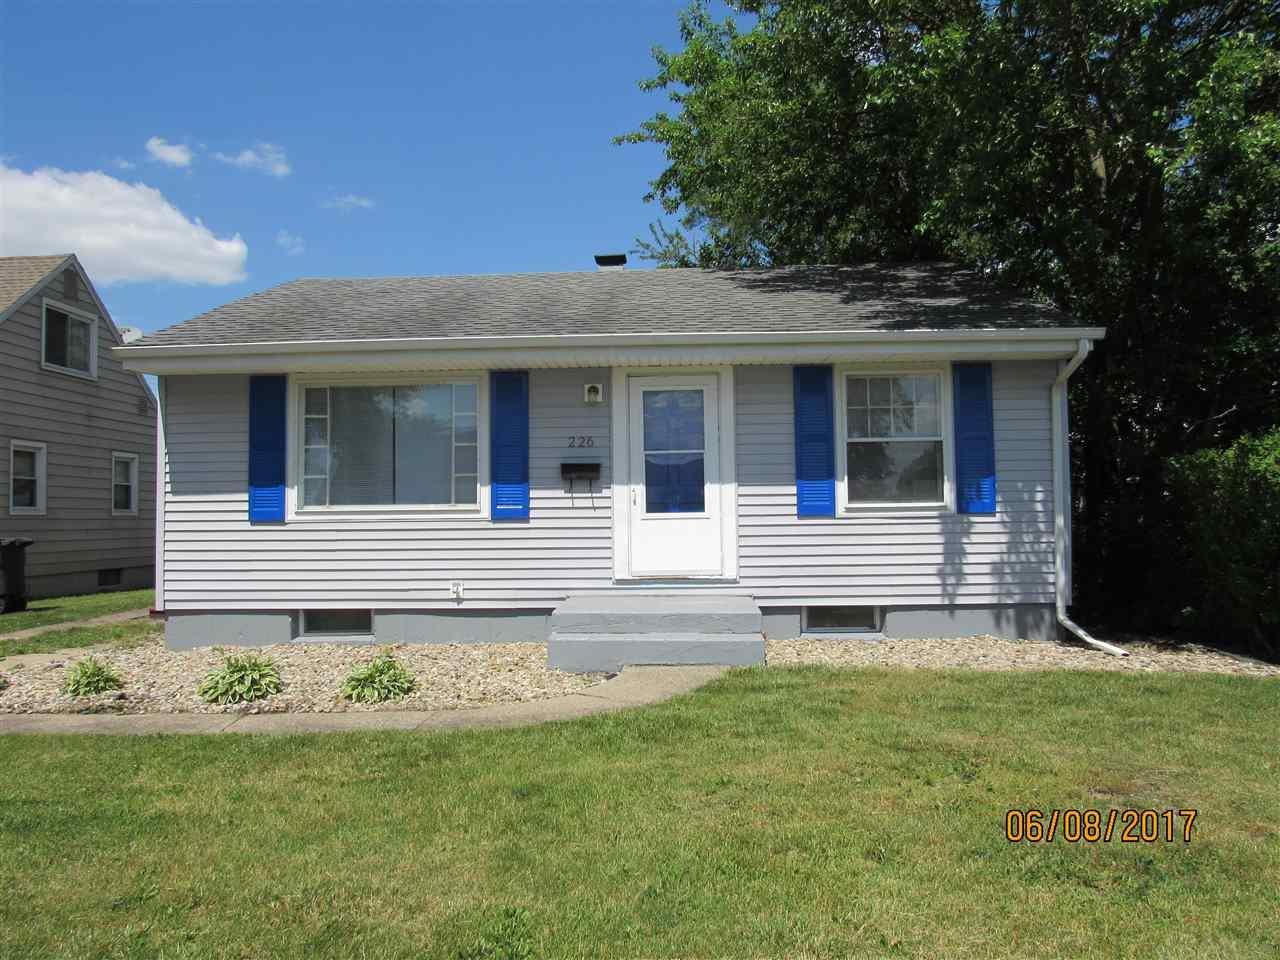 226 Village Way, South Bend, IN 46619